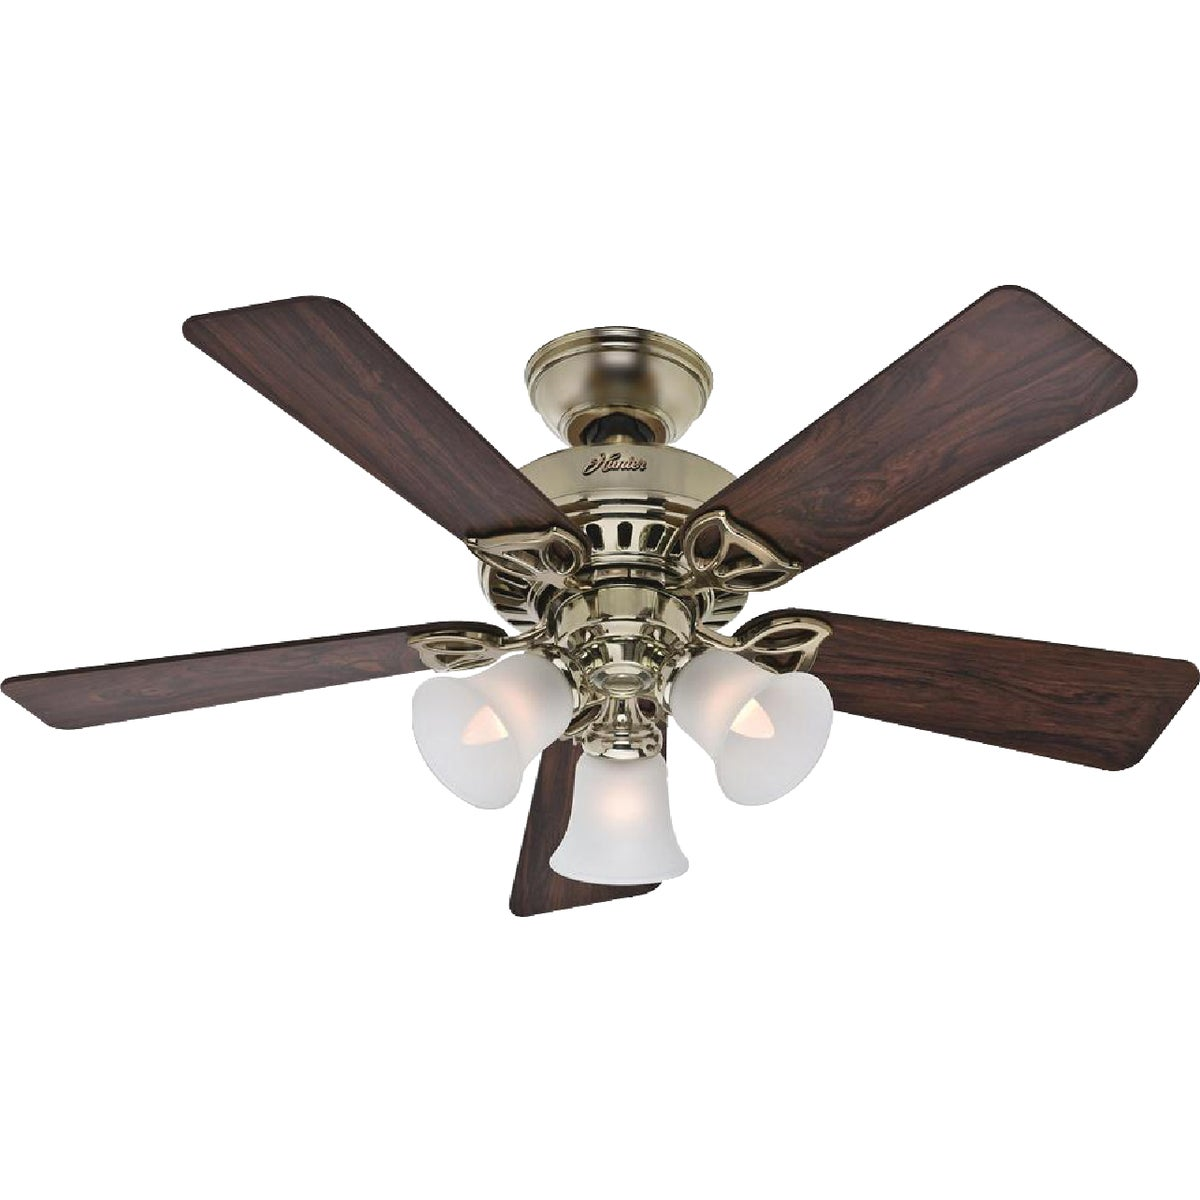 "42"" BB CEIL FAN W/LIGHT - 53080 by Hunter Fan Co"